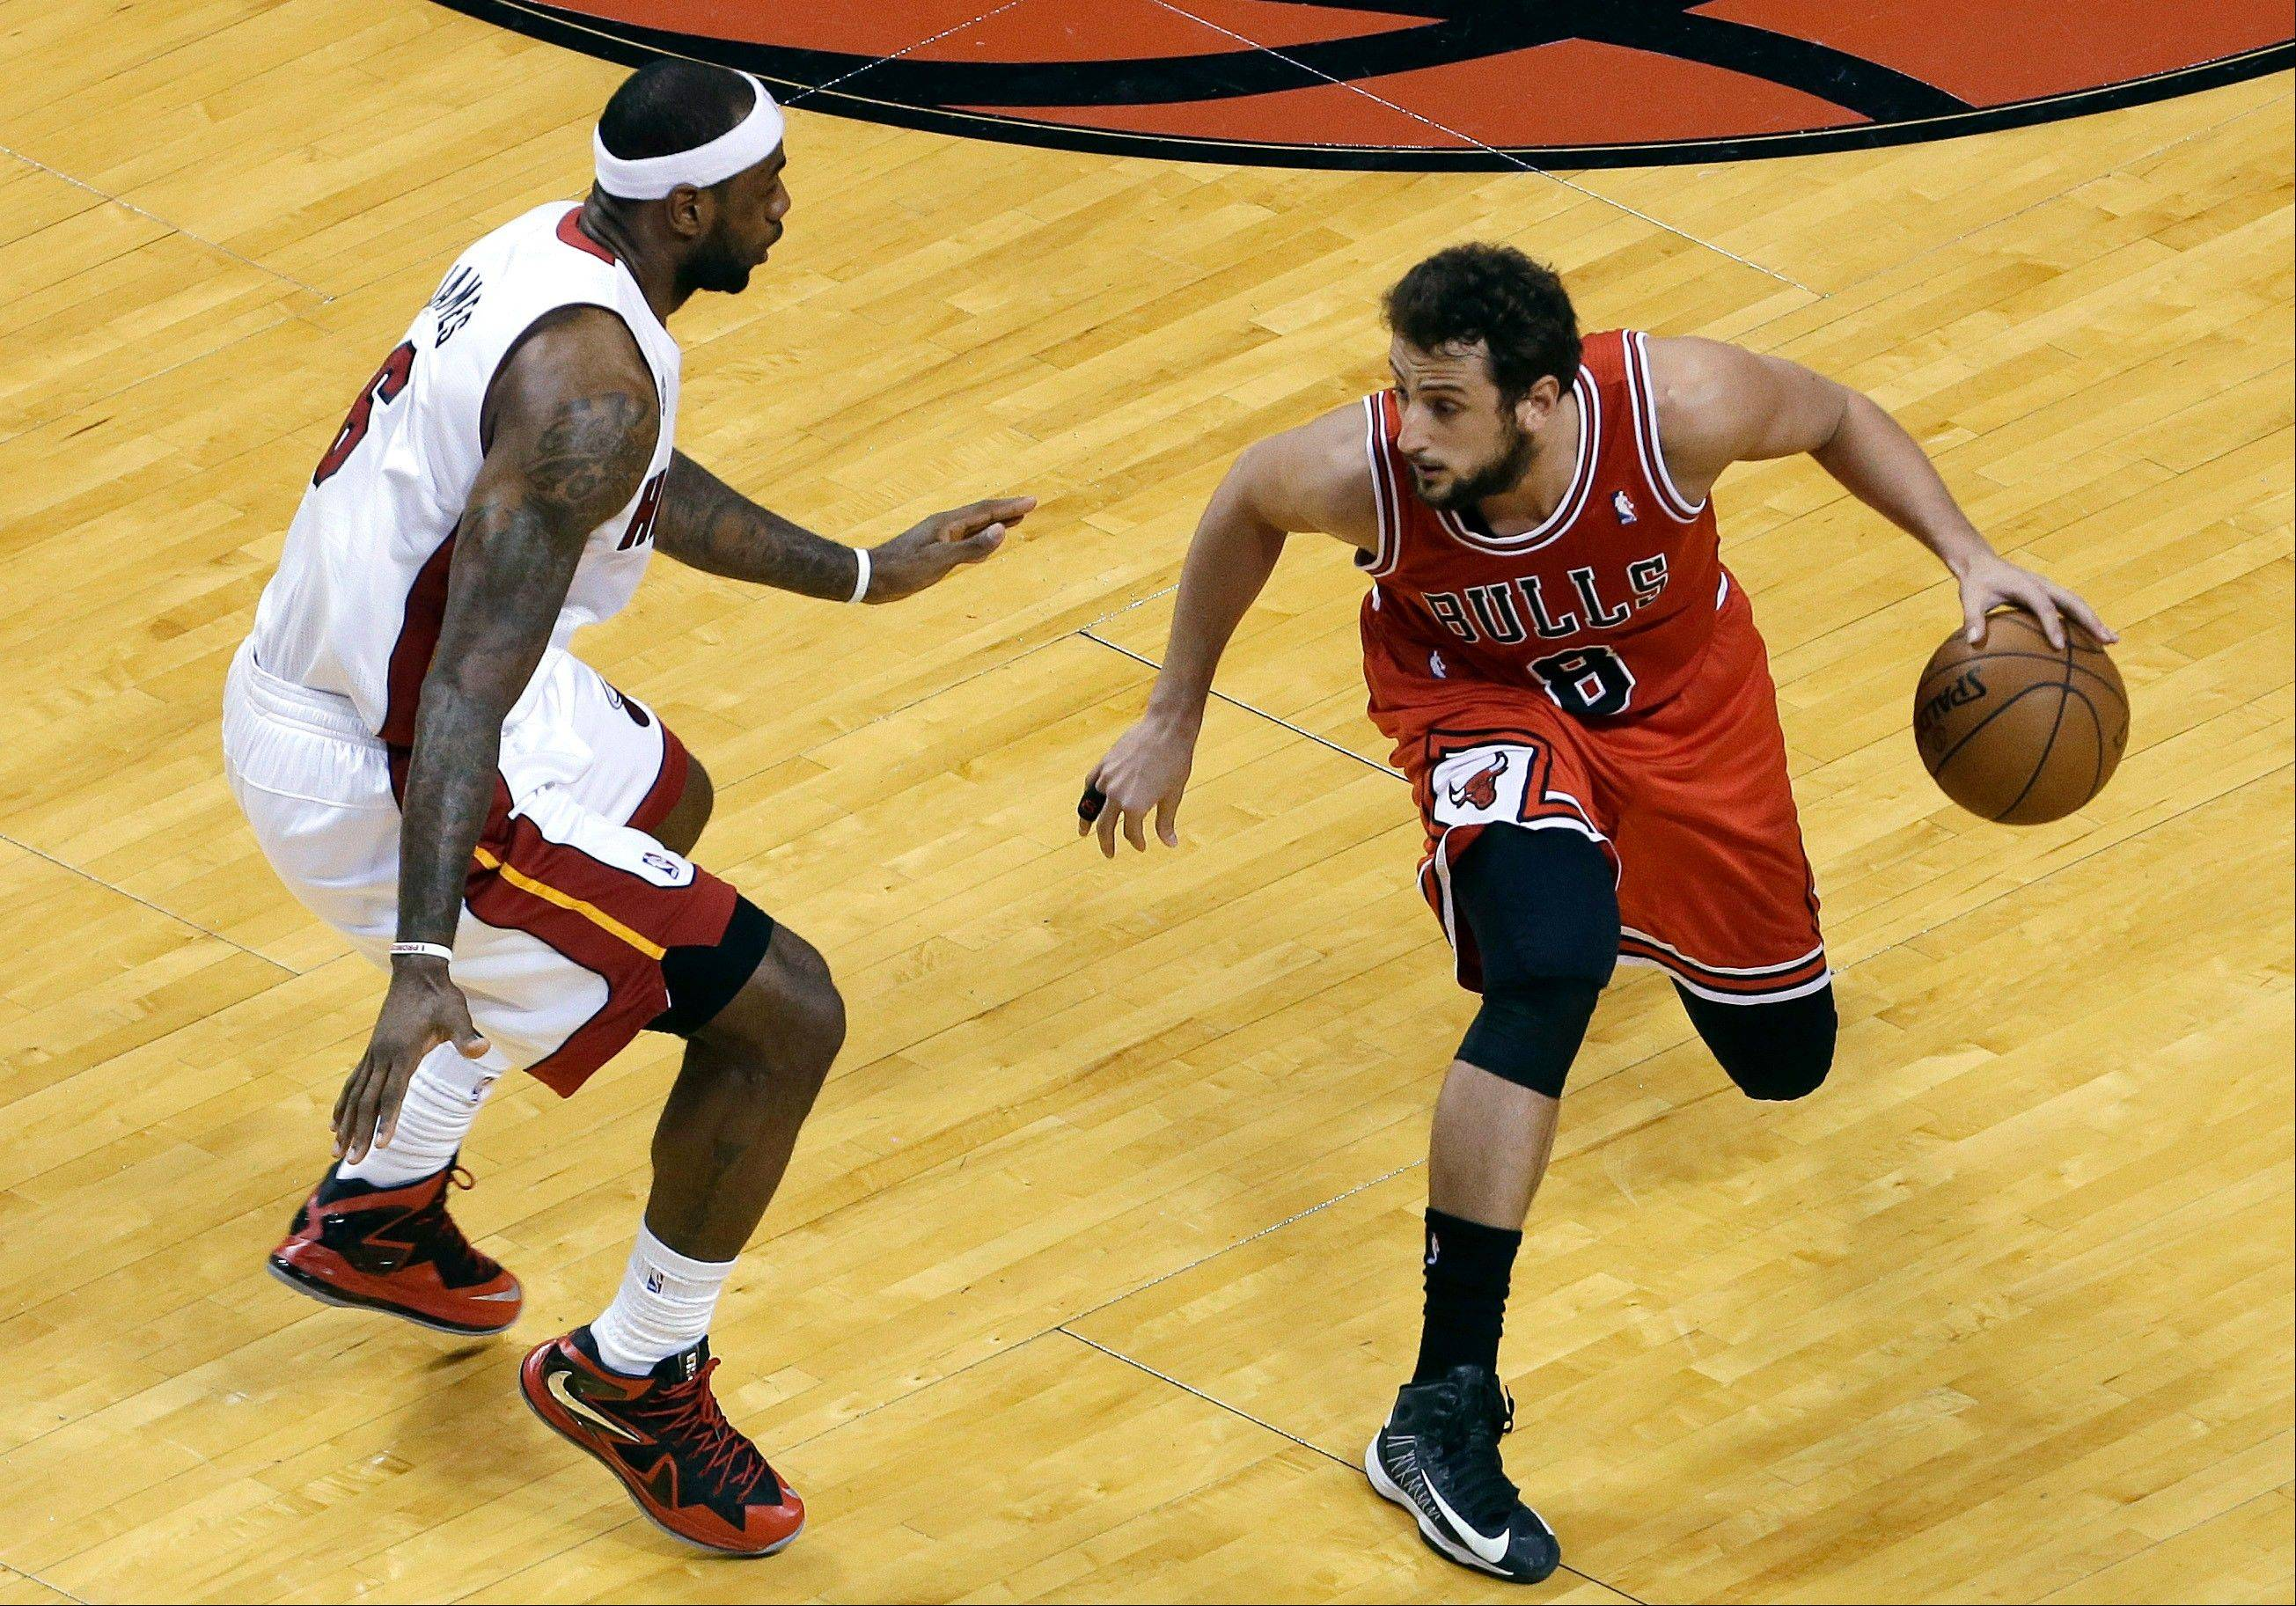 Chicago Bulls' Marco Belinelli (8) looks to move past Miami Heat's LeBron James (6) during the first half of Game 5 of an NBA basketball Eastern Conference semifinal series, Wednesday, May 15, 2013, in Miami.